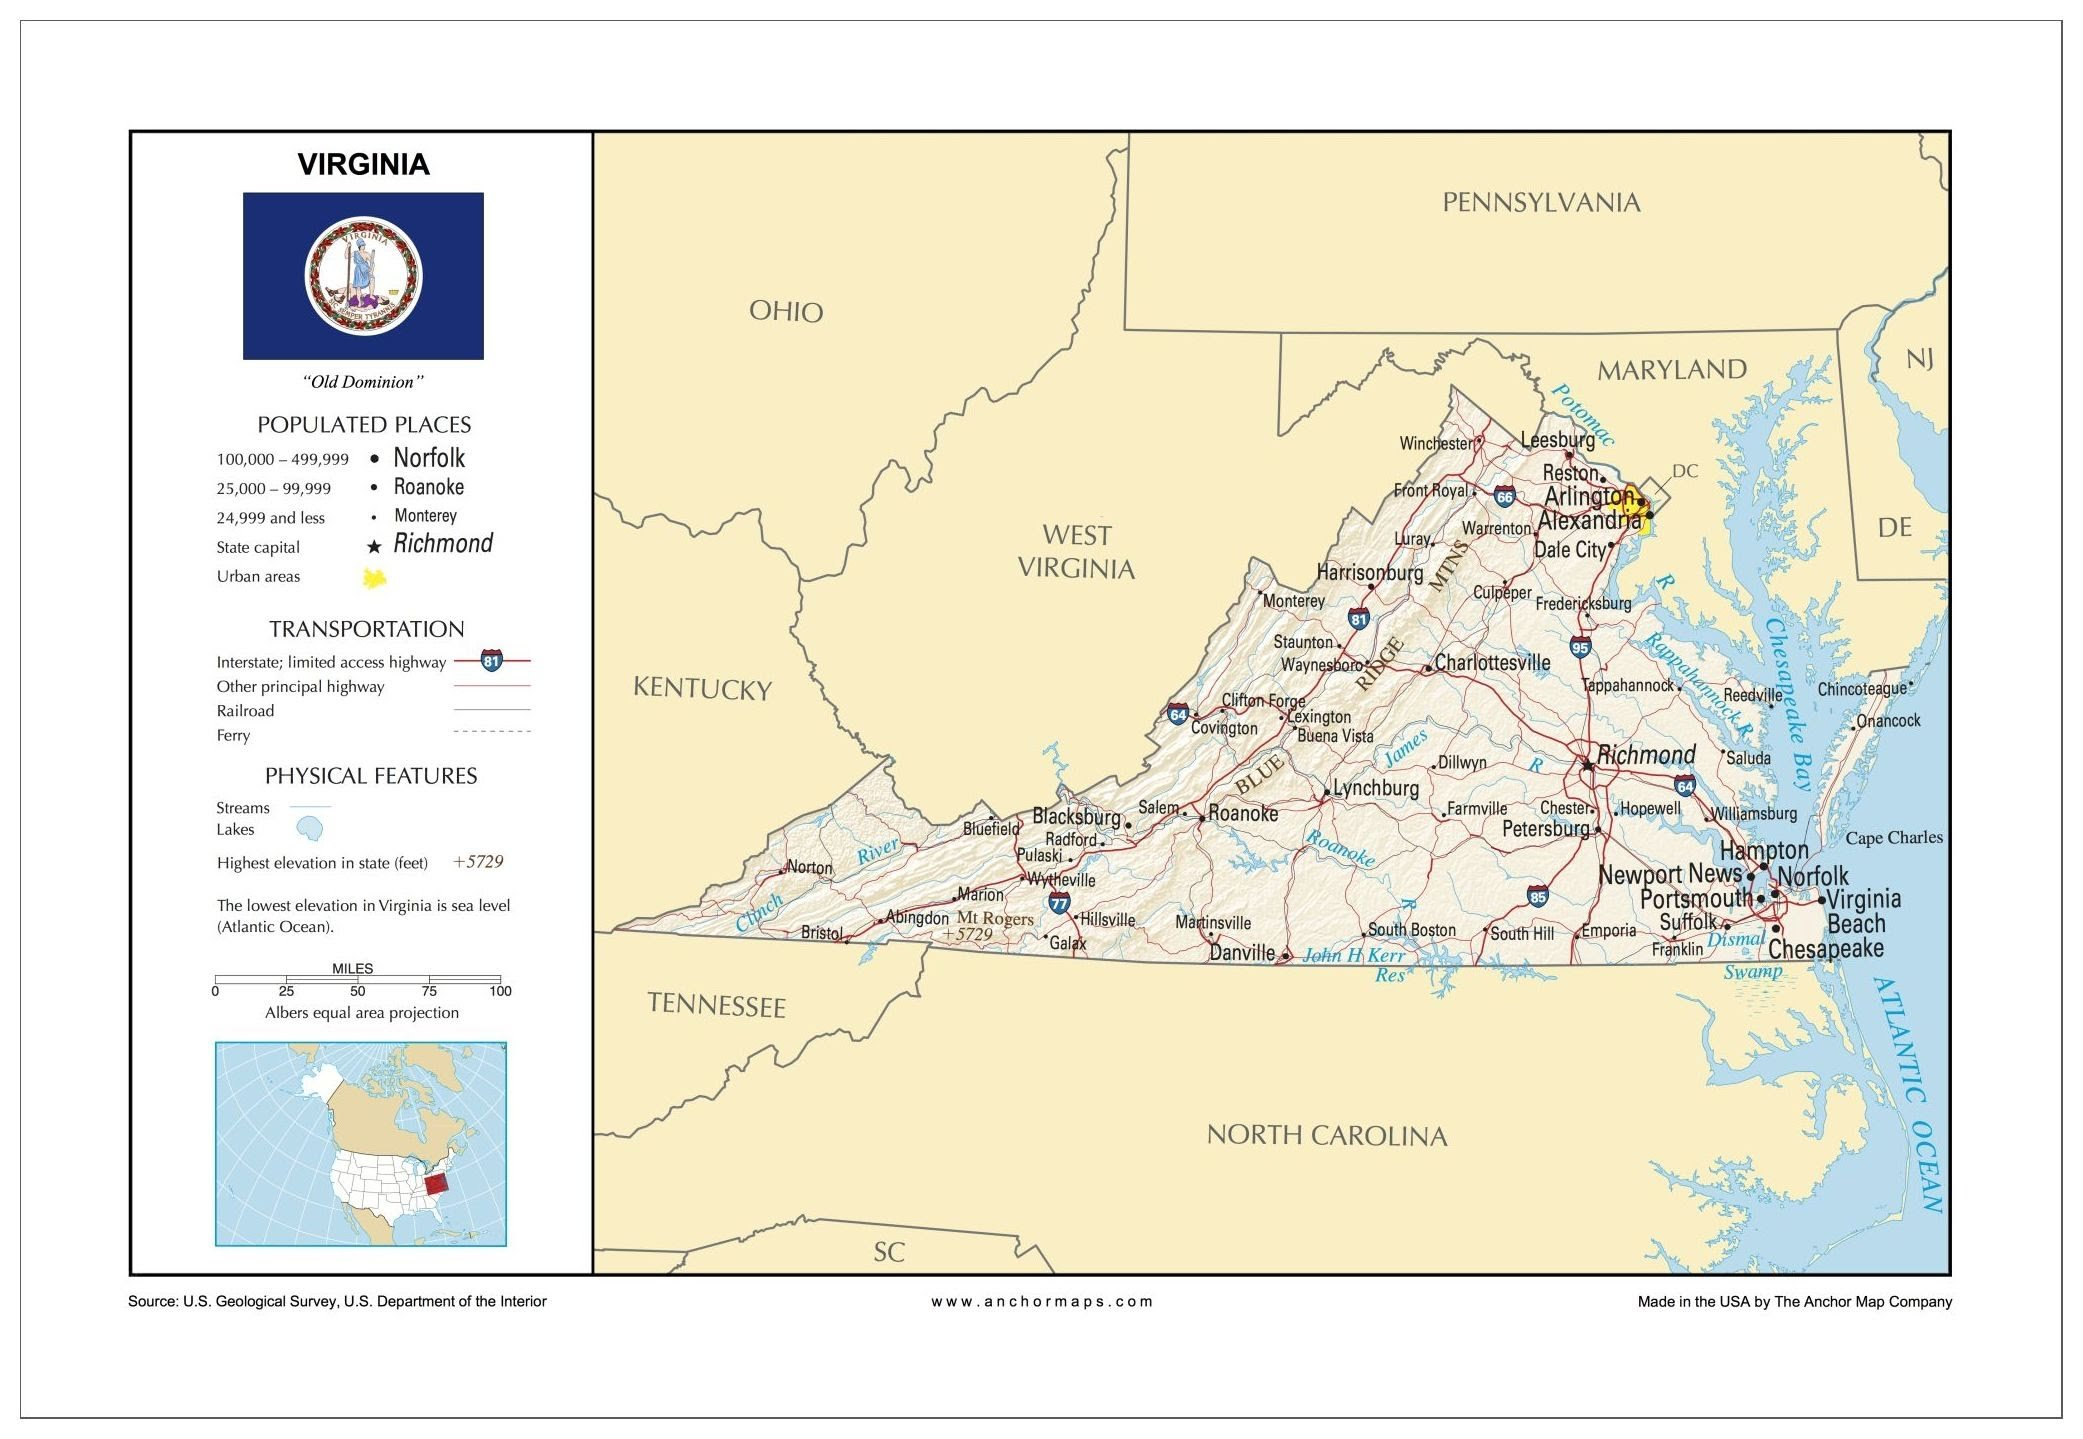 13x19 Virginia General Reference Wall Map - Anchor Maps USA Foundational Series - Cities, Roads, Physical Features, and Topography [ROLLED]